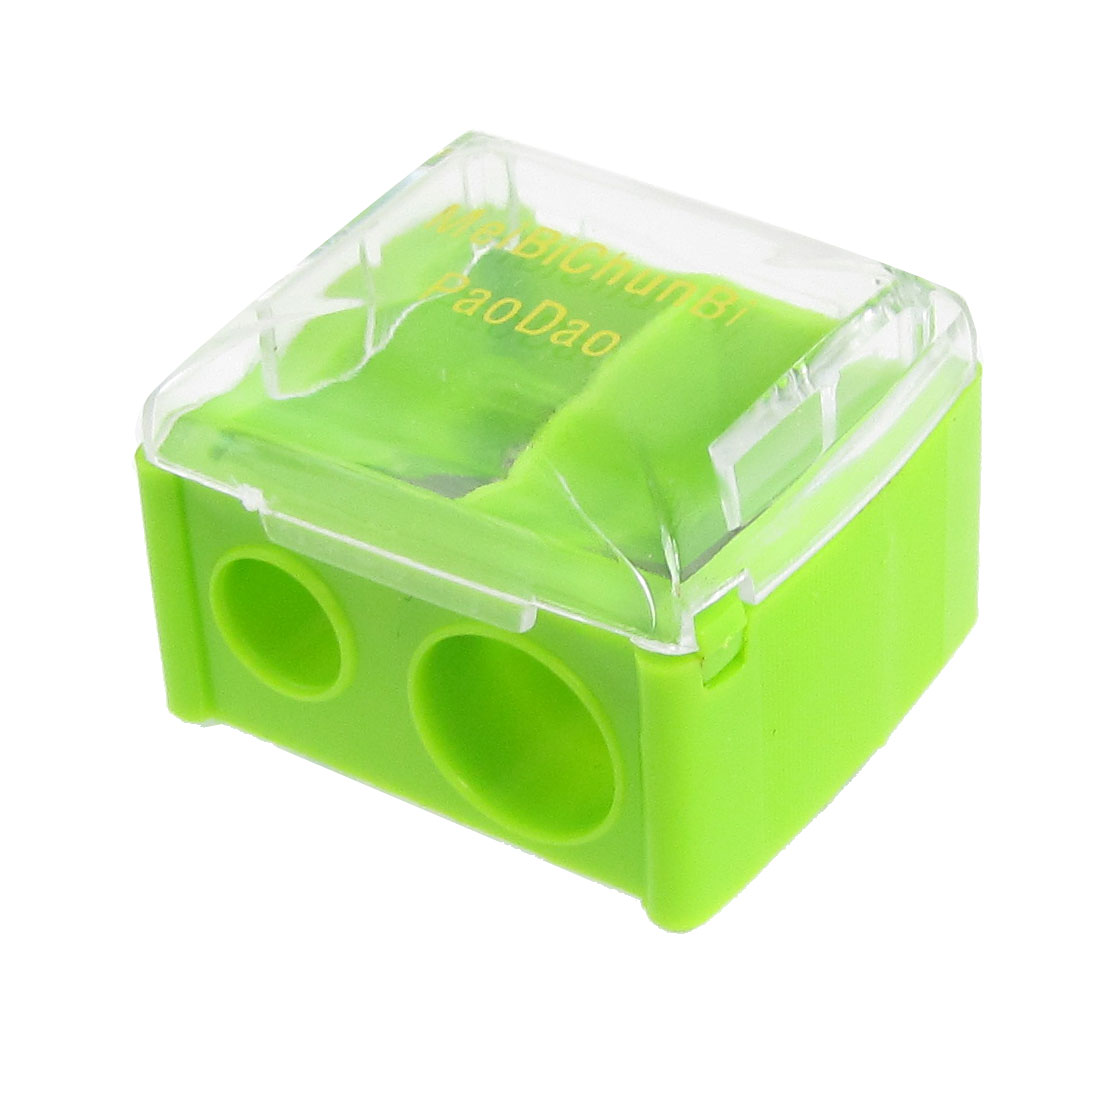 School Office Green Clear Double Hole Pencil Sharpener